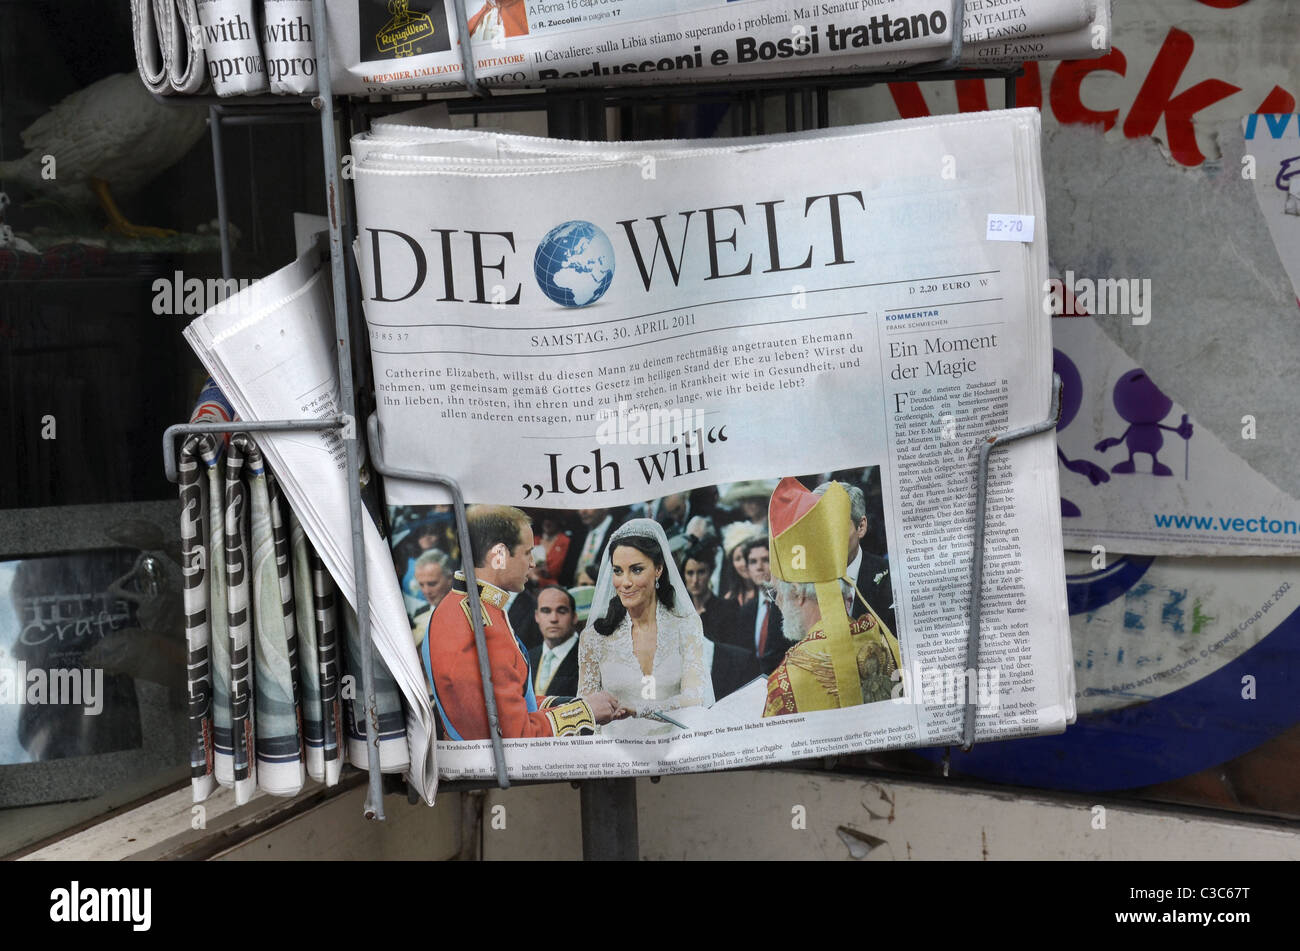 The royal wedding of Prince William and Kate Middleton as reported in the German newspaper 'Die Welt' - Stock Image